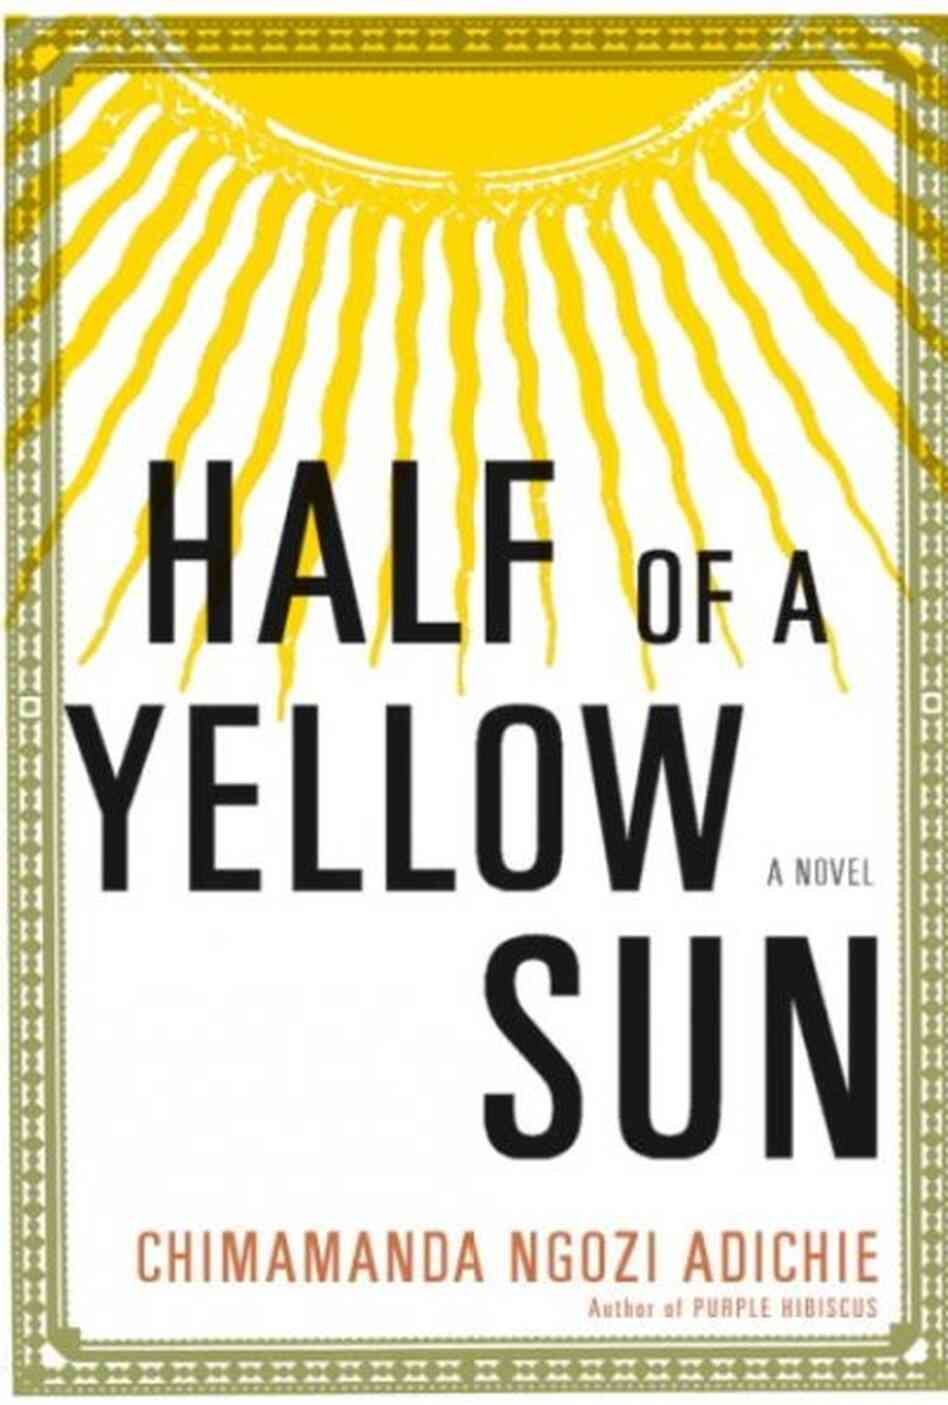 the growth of ugwu in half of a yellow sun a novel by chimamanda ngozi adichie Chimamanda ngozi adichie's half of a yellow sun is a powerful novel that addresses the emotional and personal consequences of the nigerian civil war, along with the historical atrocities that accompanied it abuja, nigeria this is a.